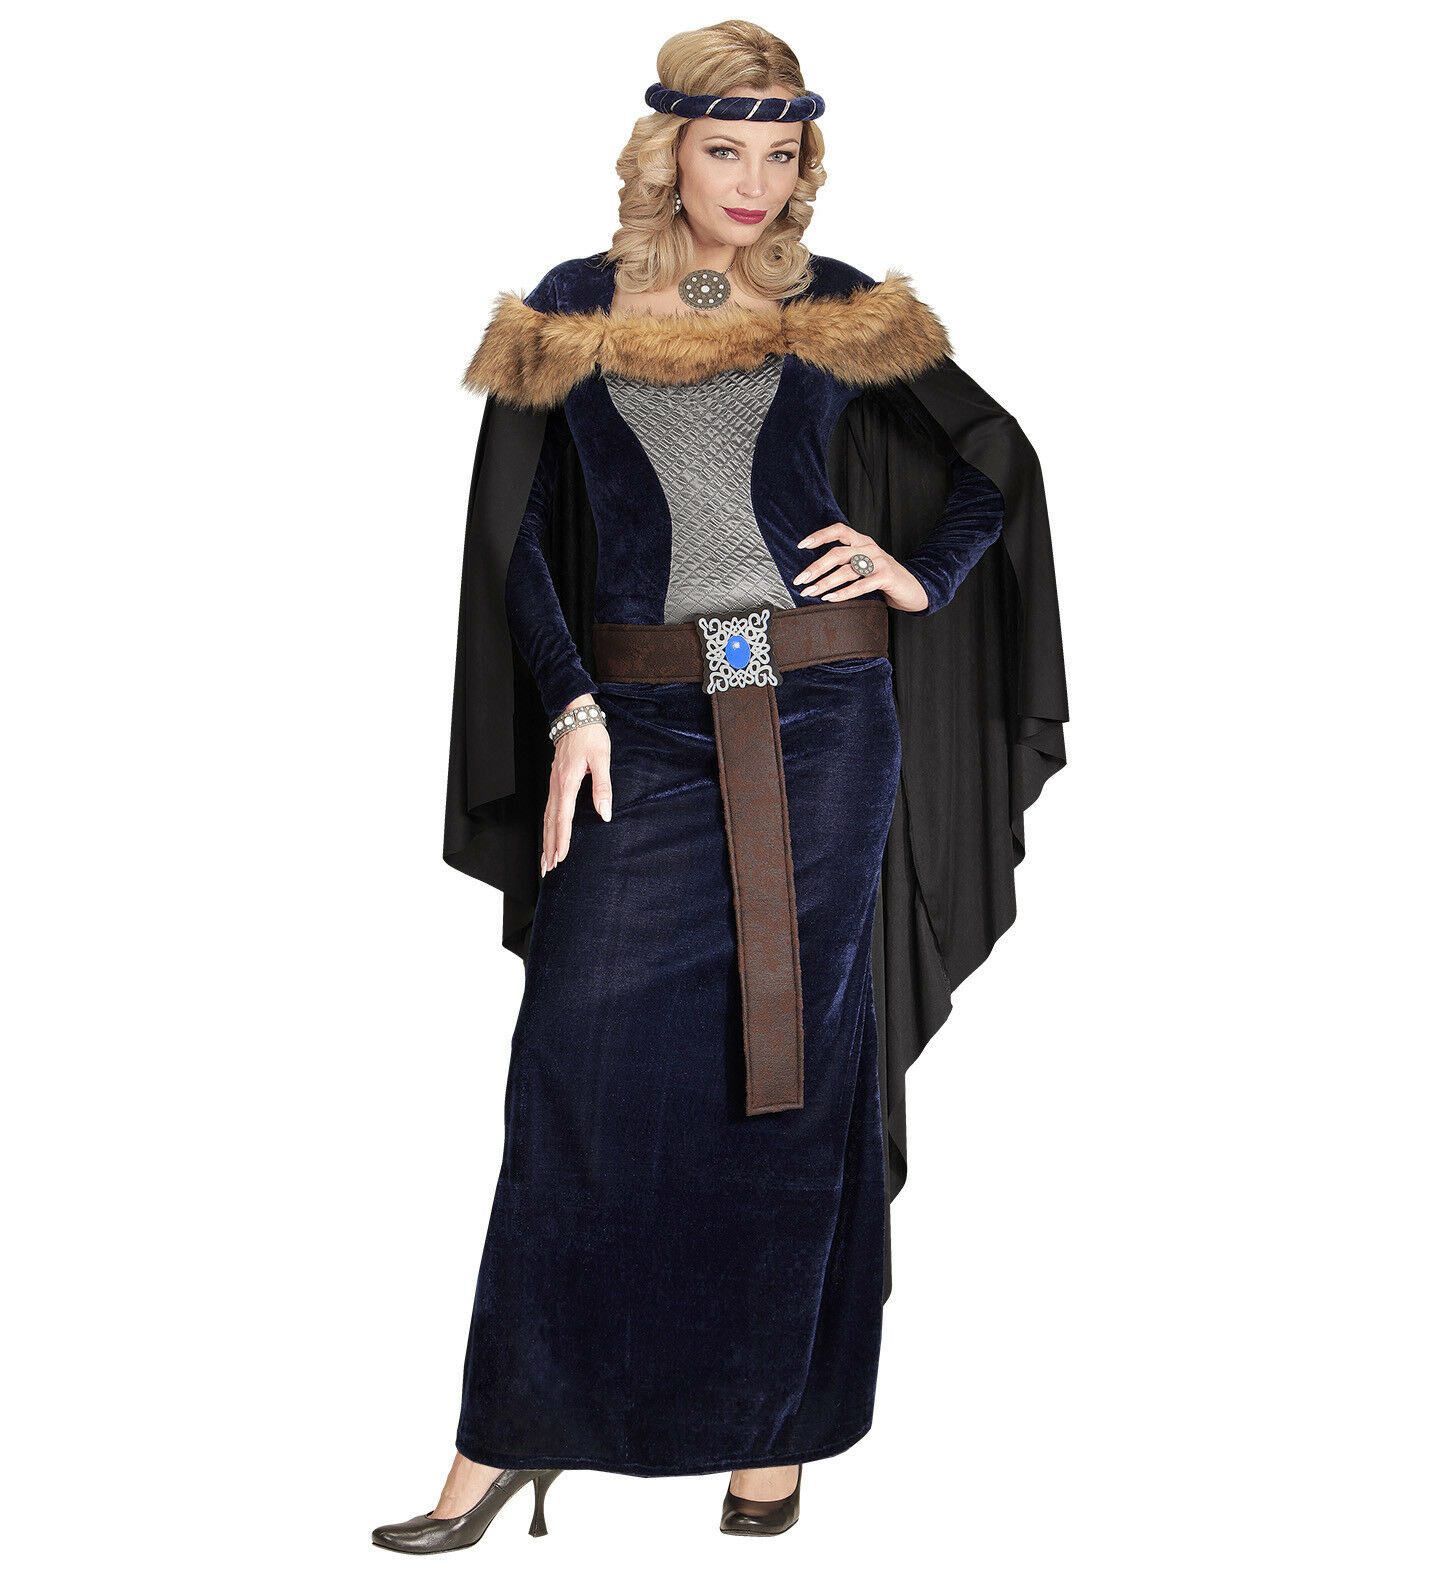 Game Of Thrones - Medieval Princess Fancy Dress Costume Style Women Female Dress